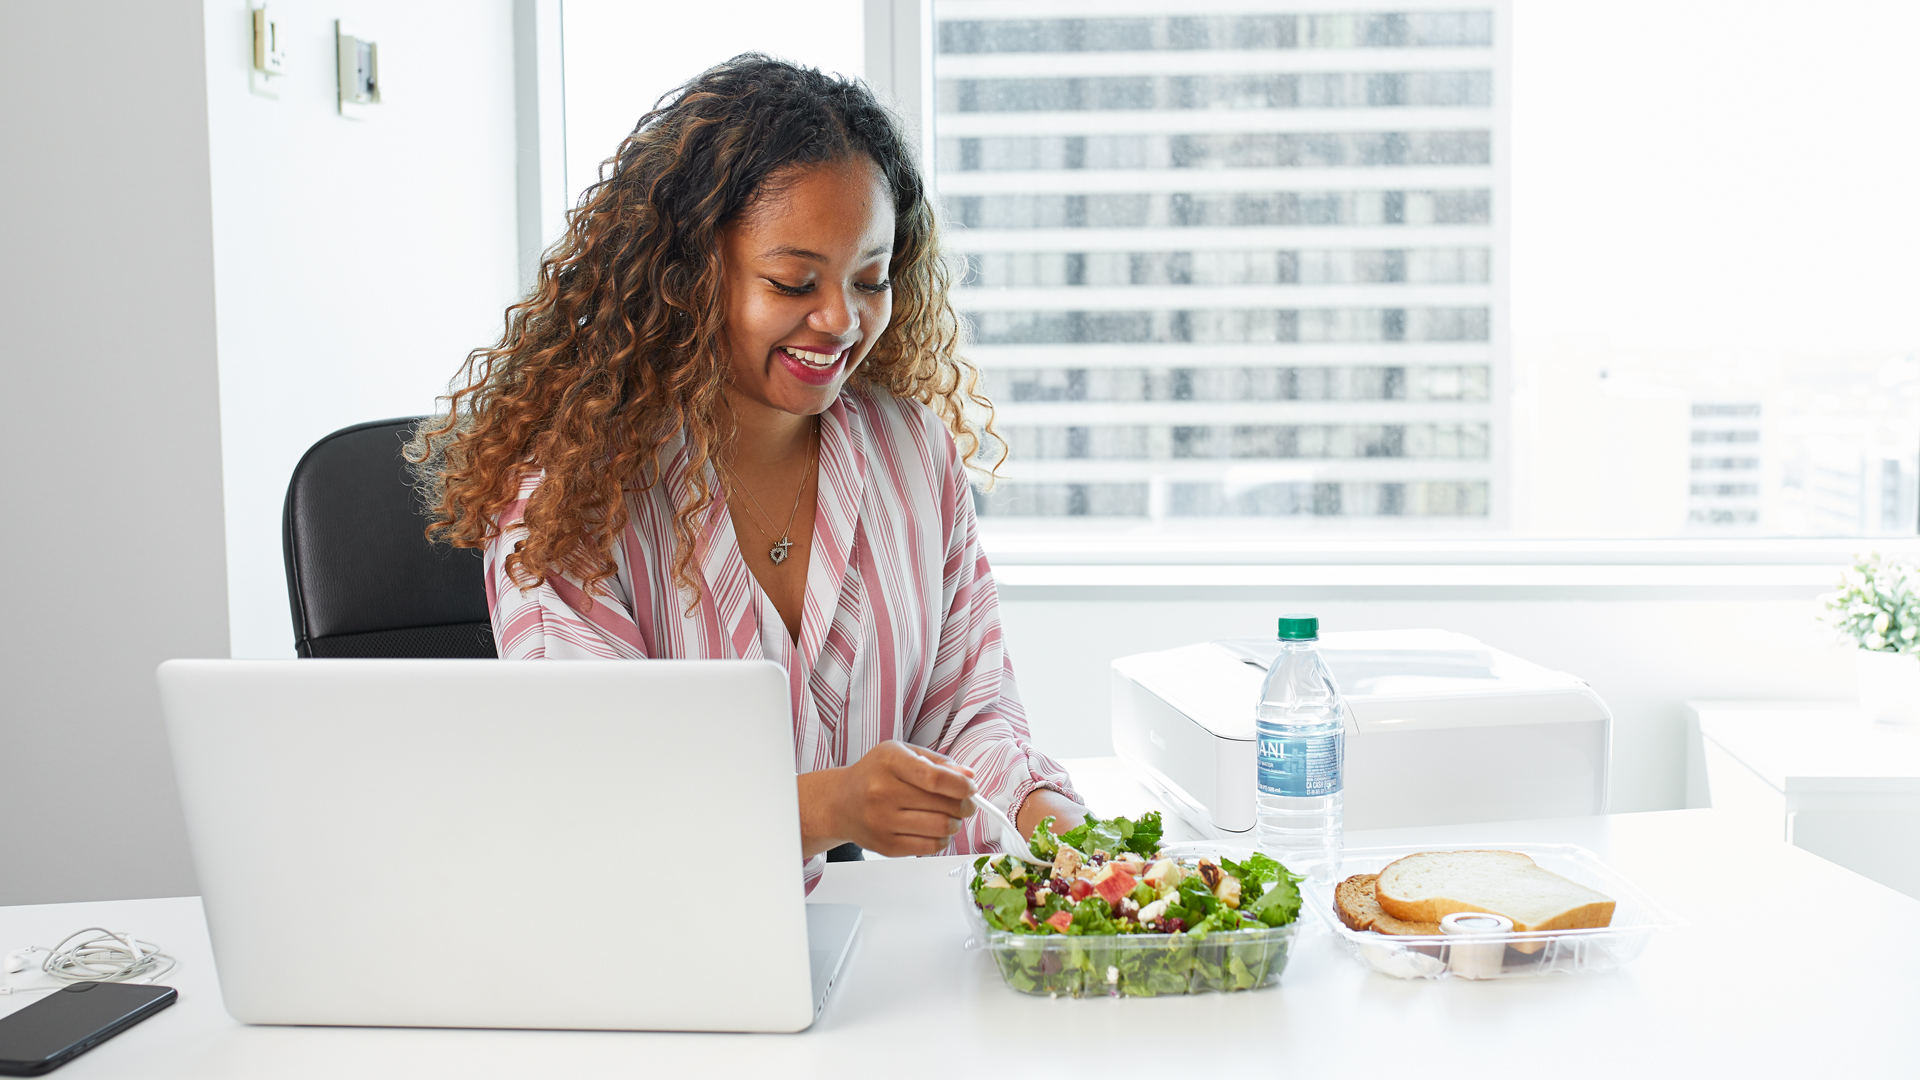 Office Employee Enjoying Apple Spice Catered Salad